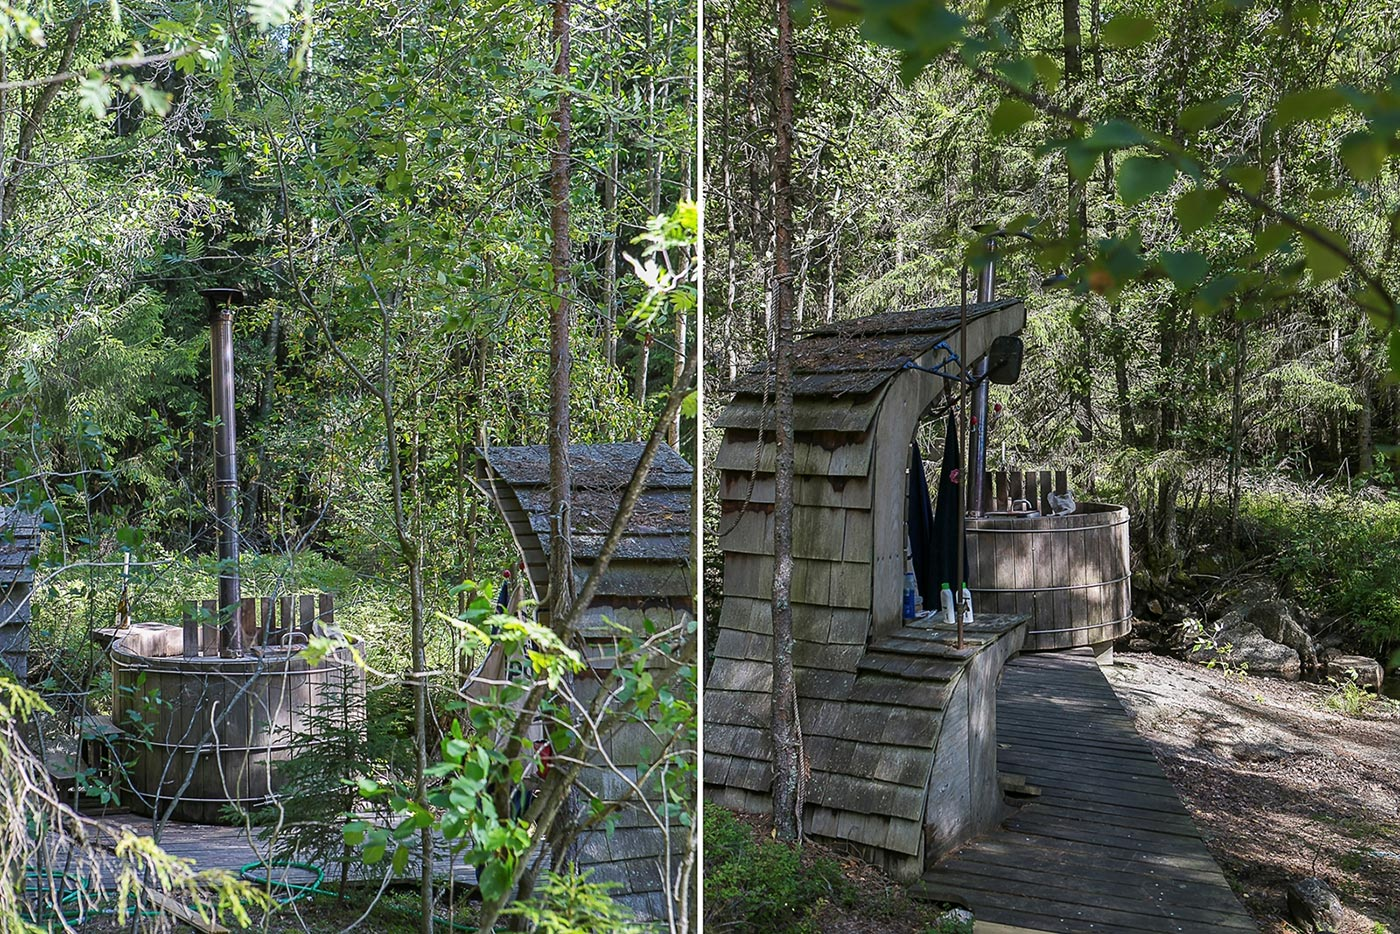 Wooden deck of a forest home